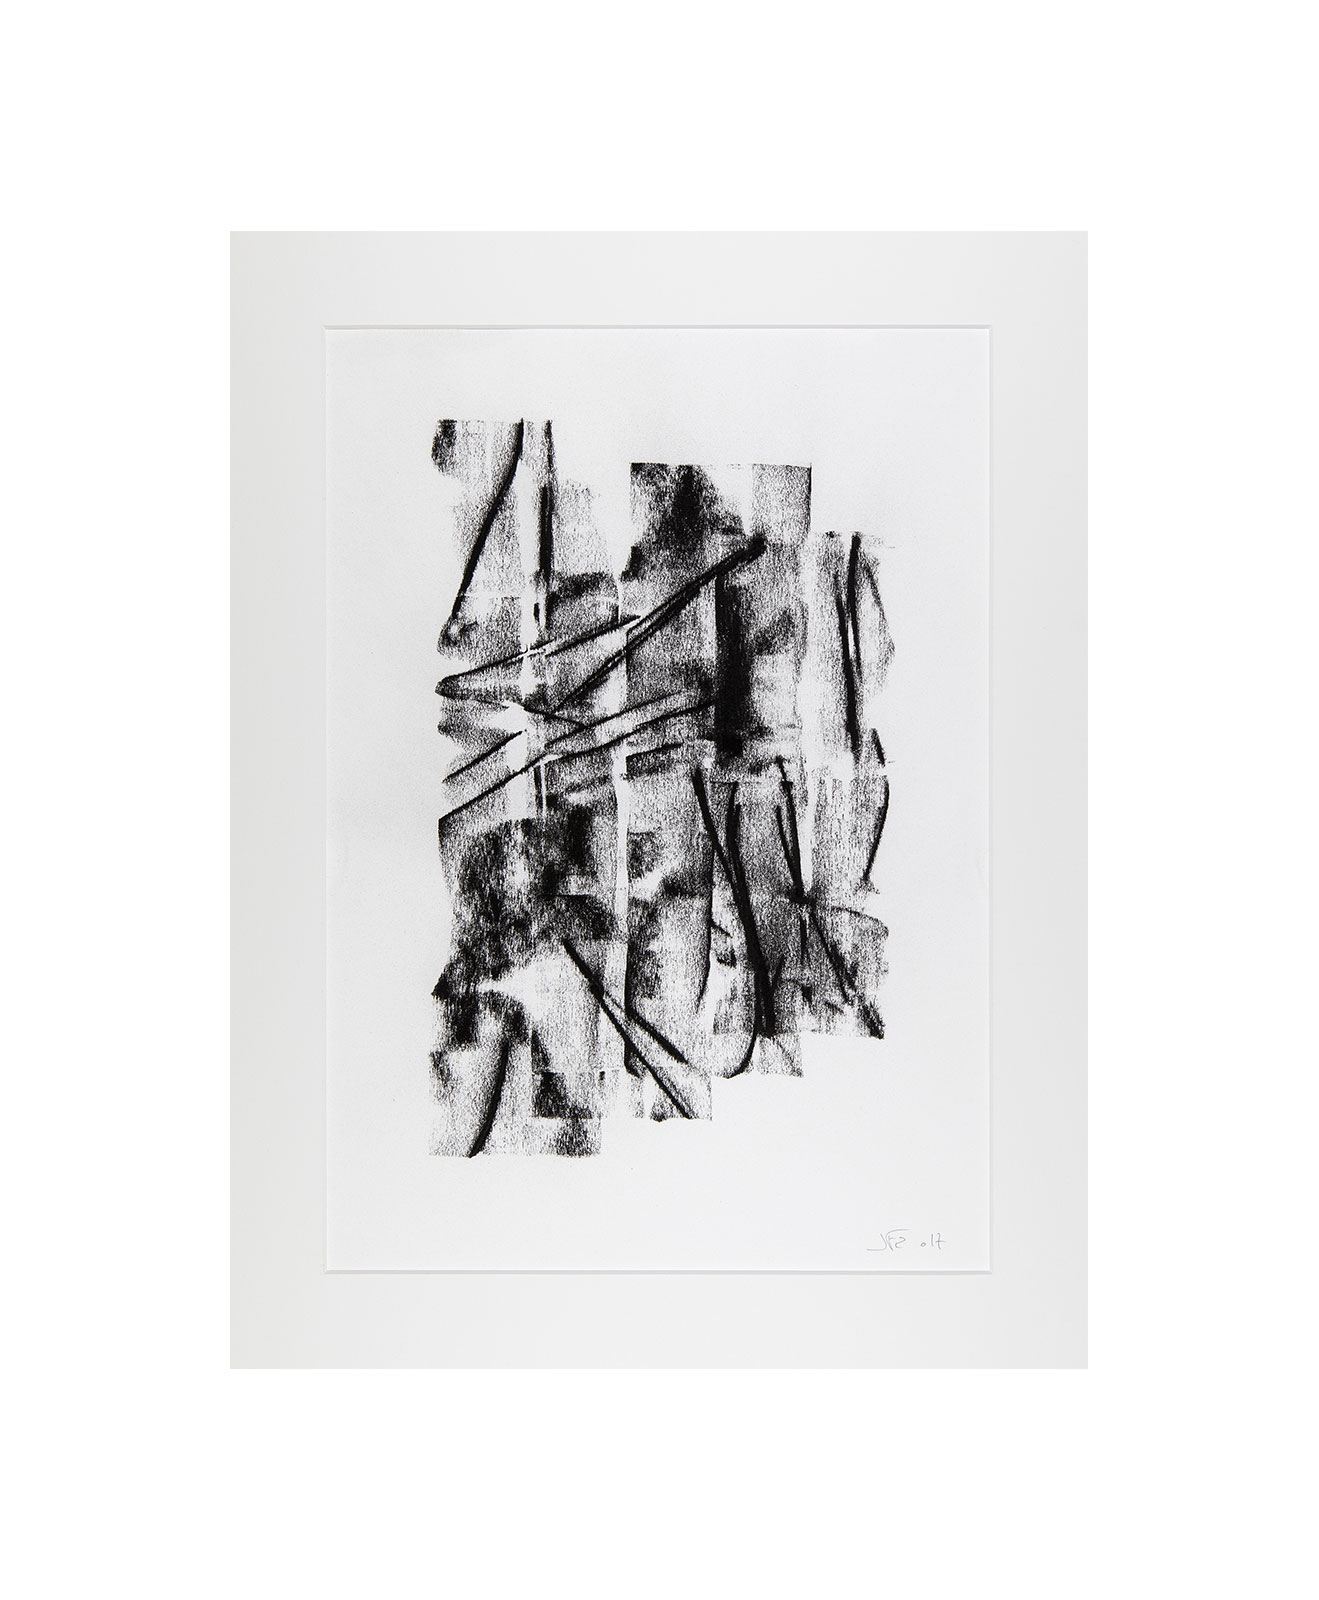 Cha 1.12, Charcoal on paper, black and white artwork, drawing, jf escande, contemporary art